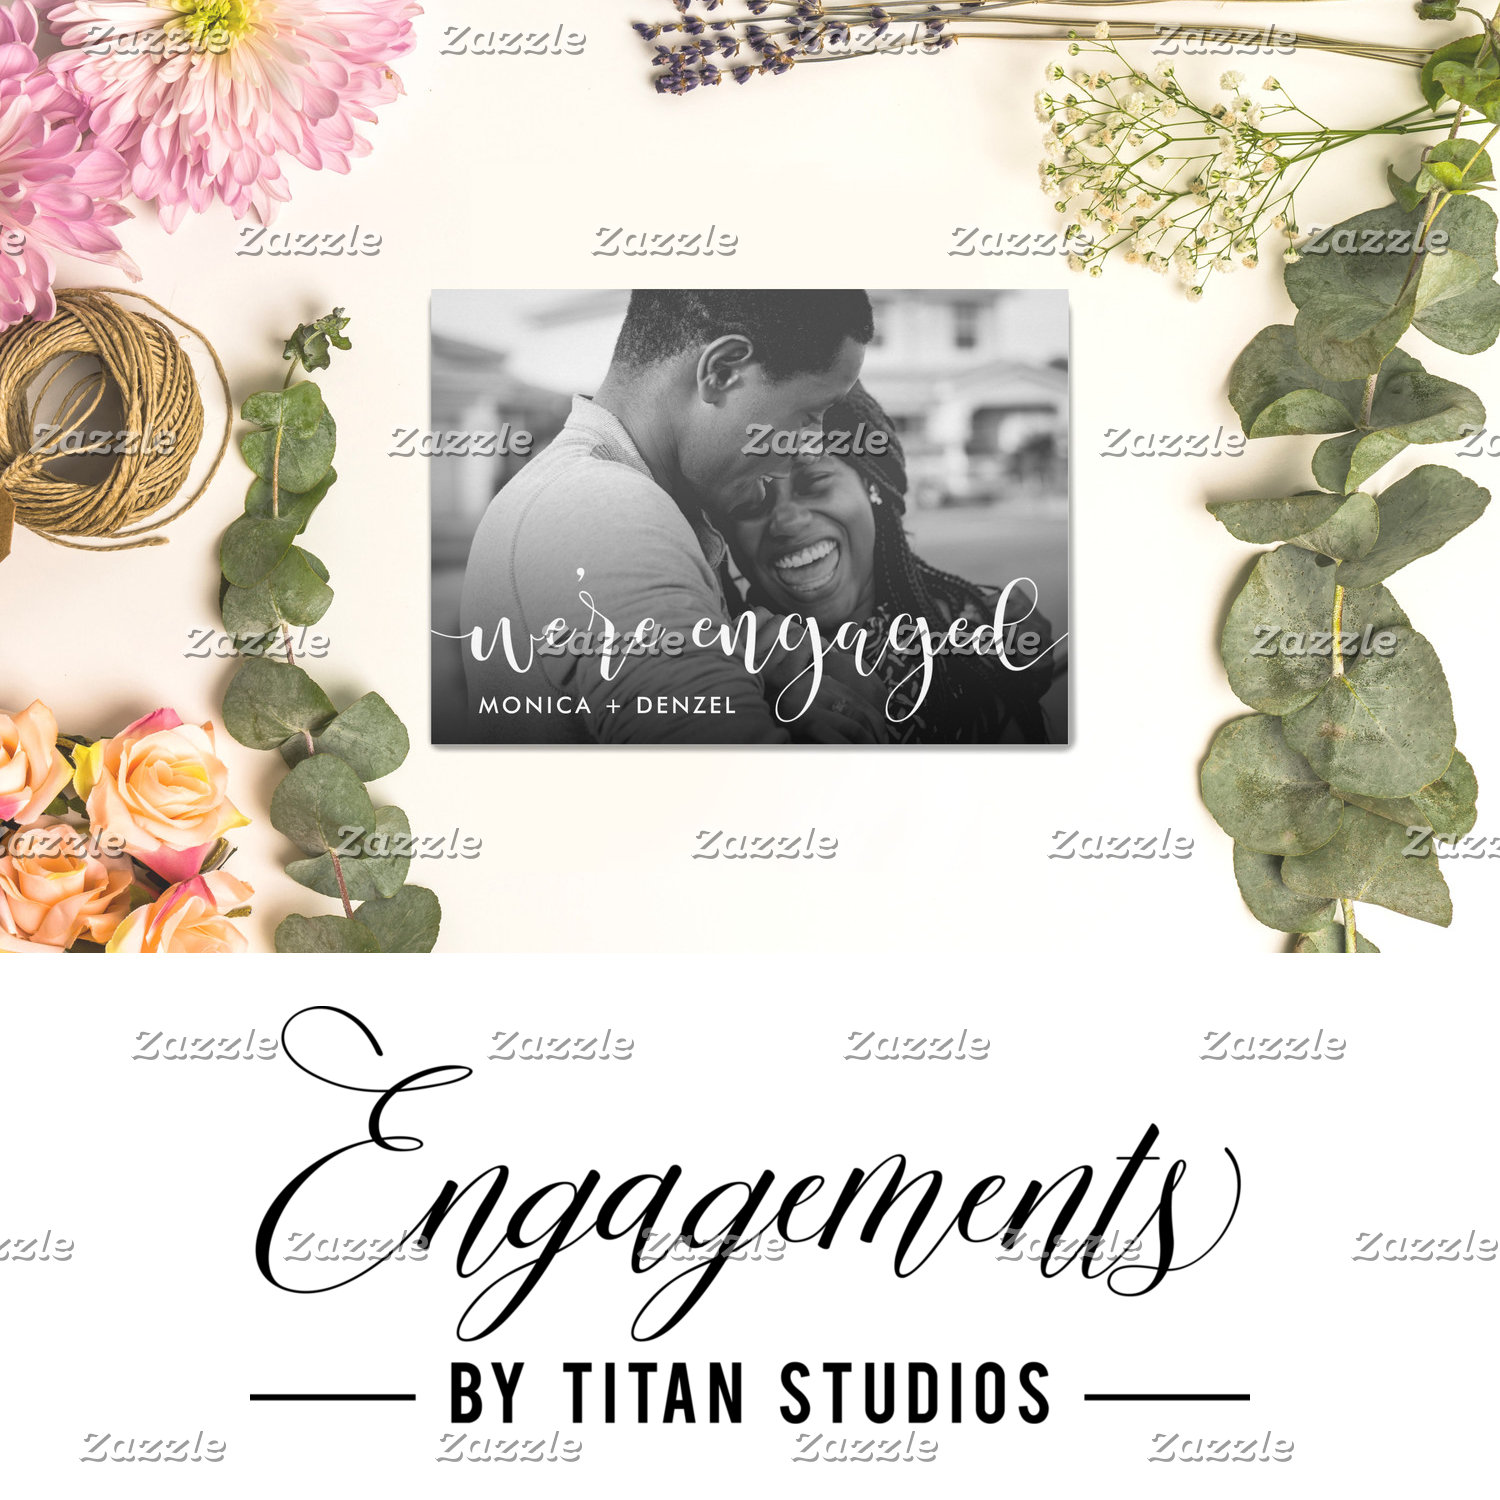 Engagements by Titan Studios